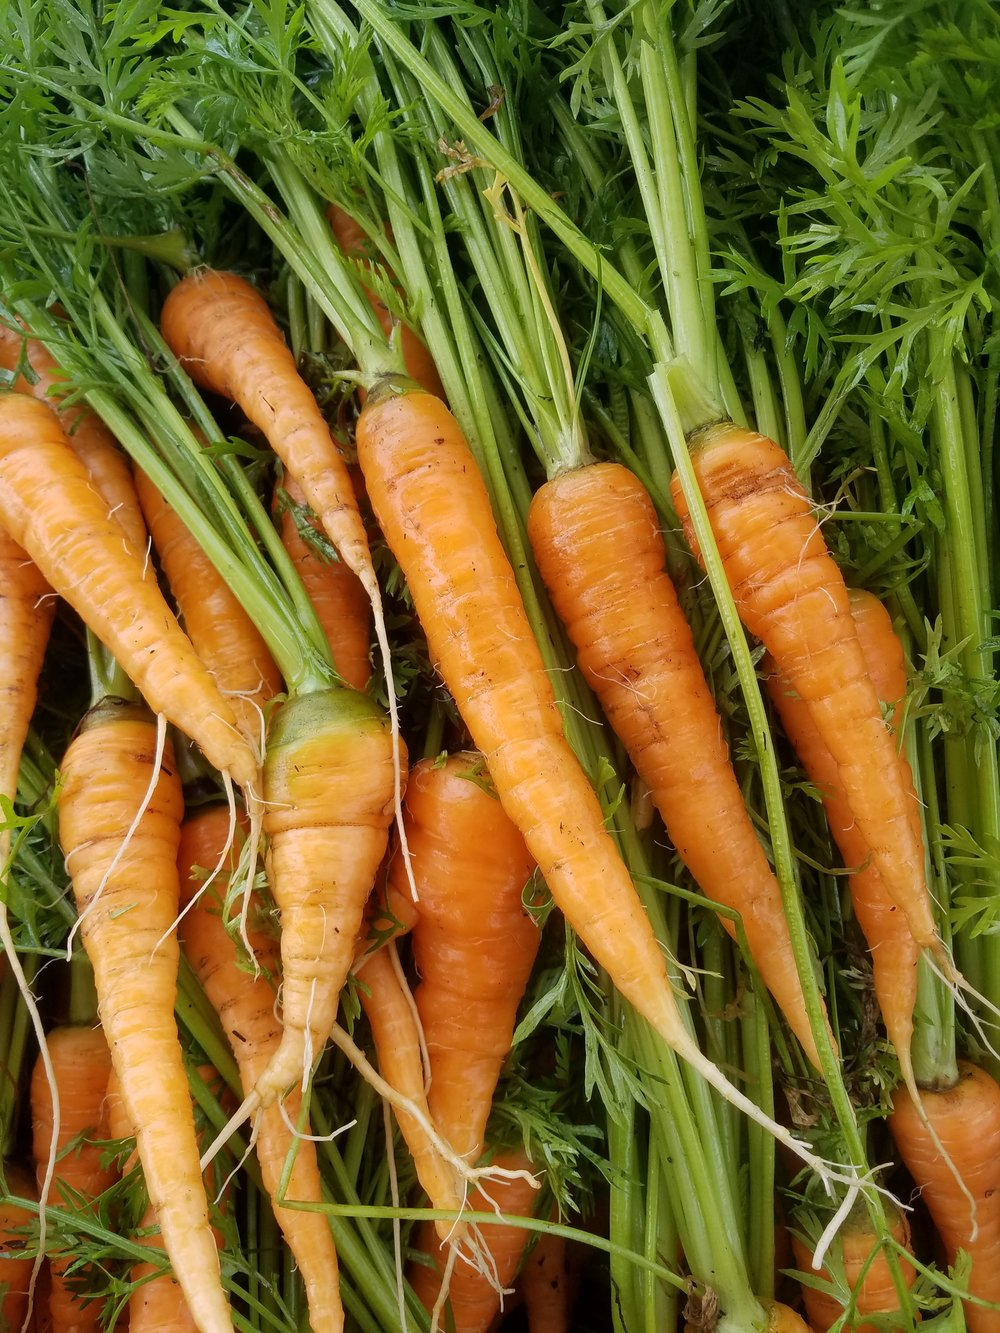 Carrots - A heirloom French variety that has a sweet, earthy flavor and stays crisp even when cooked. Elevate your salads, coleslaw, and soups with this delicious staple crop.